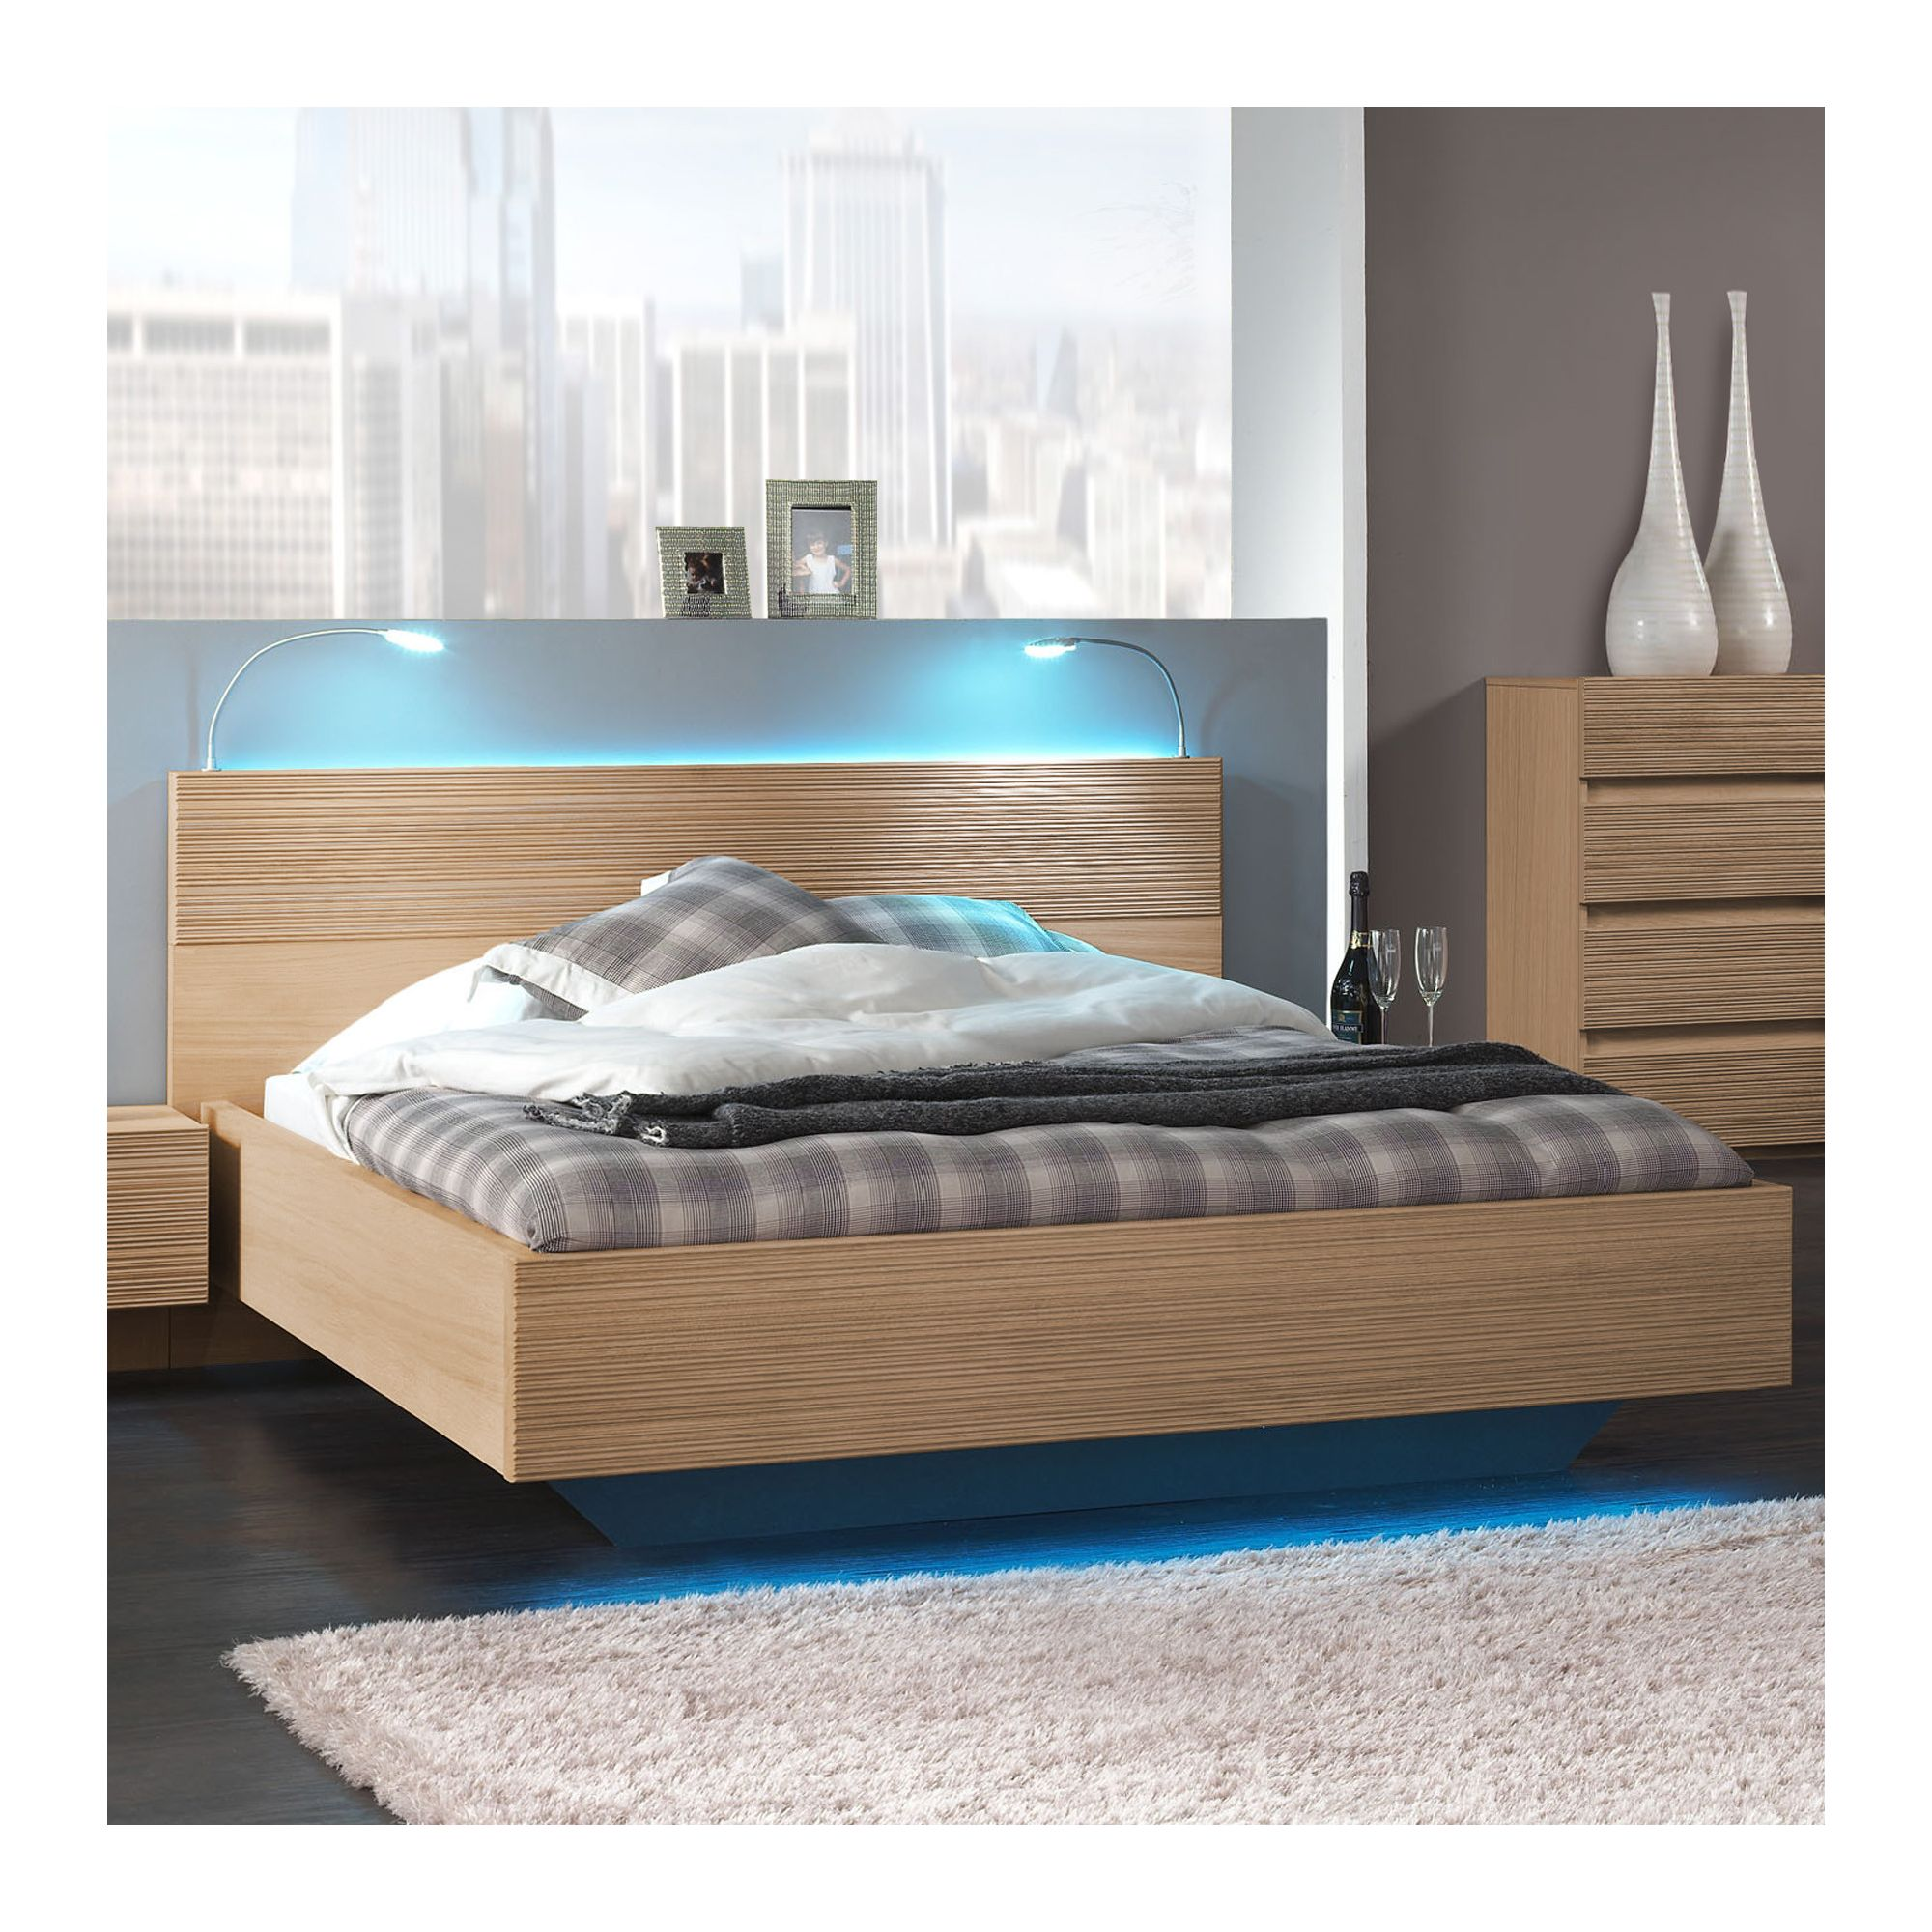 Sleepline Diva Bed - European Double - Mat Lacquered at Tesco Direct